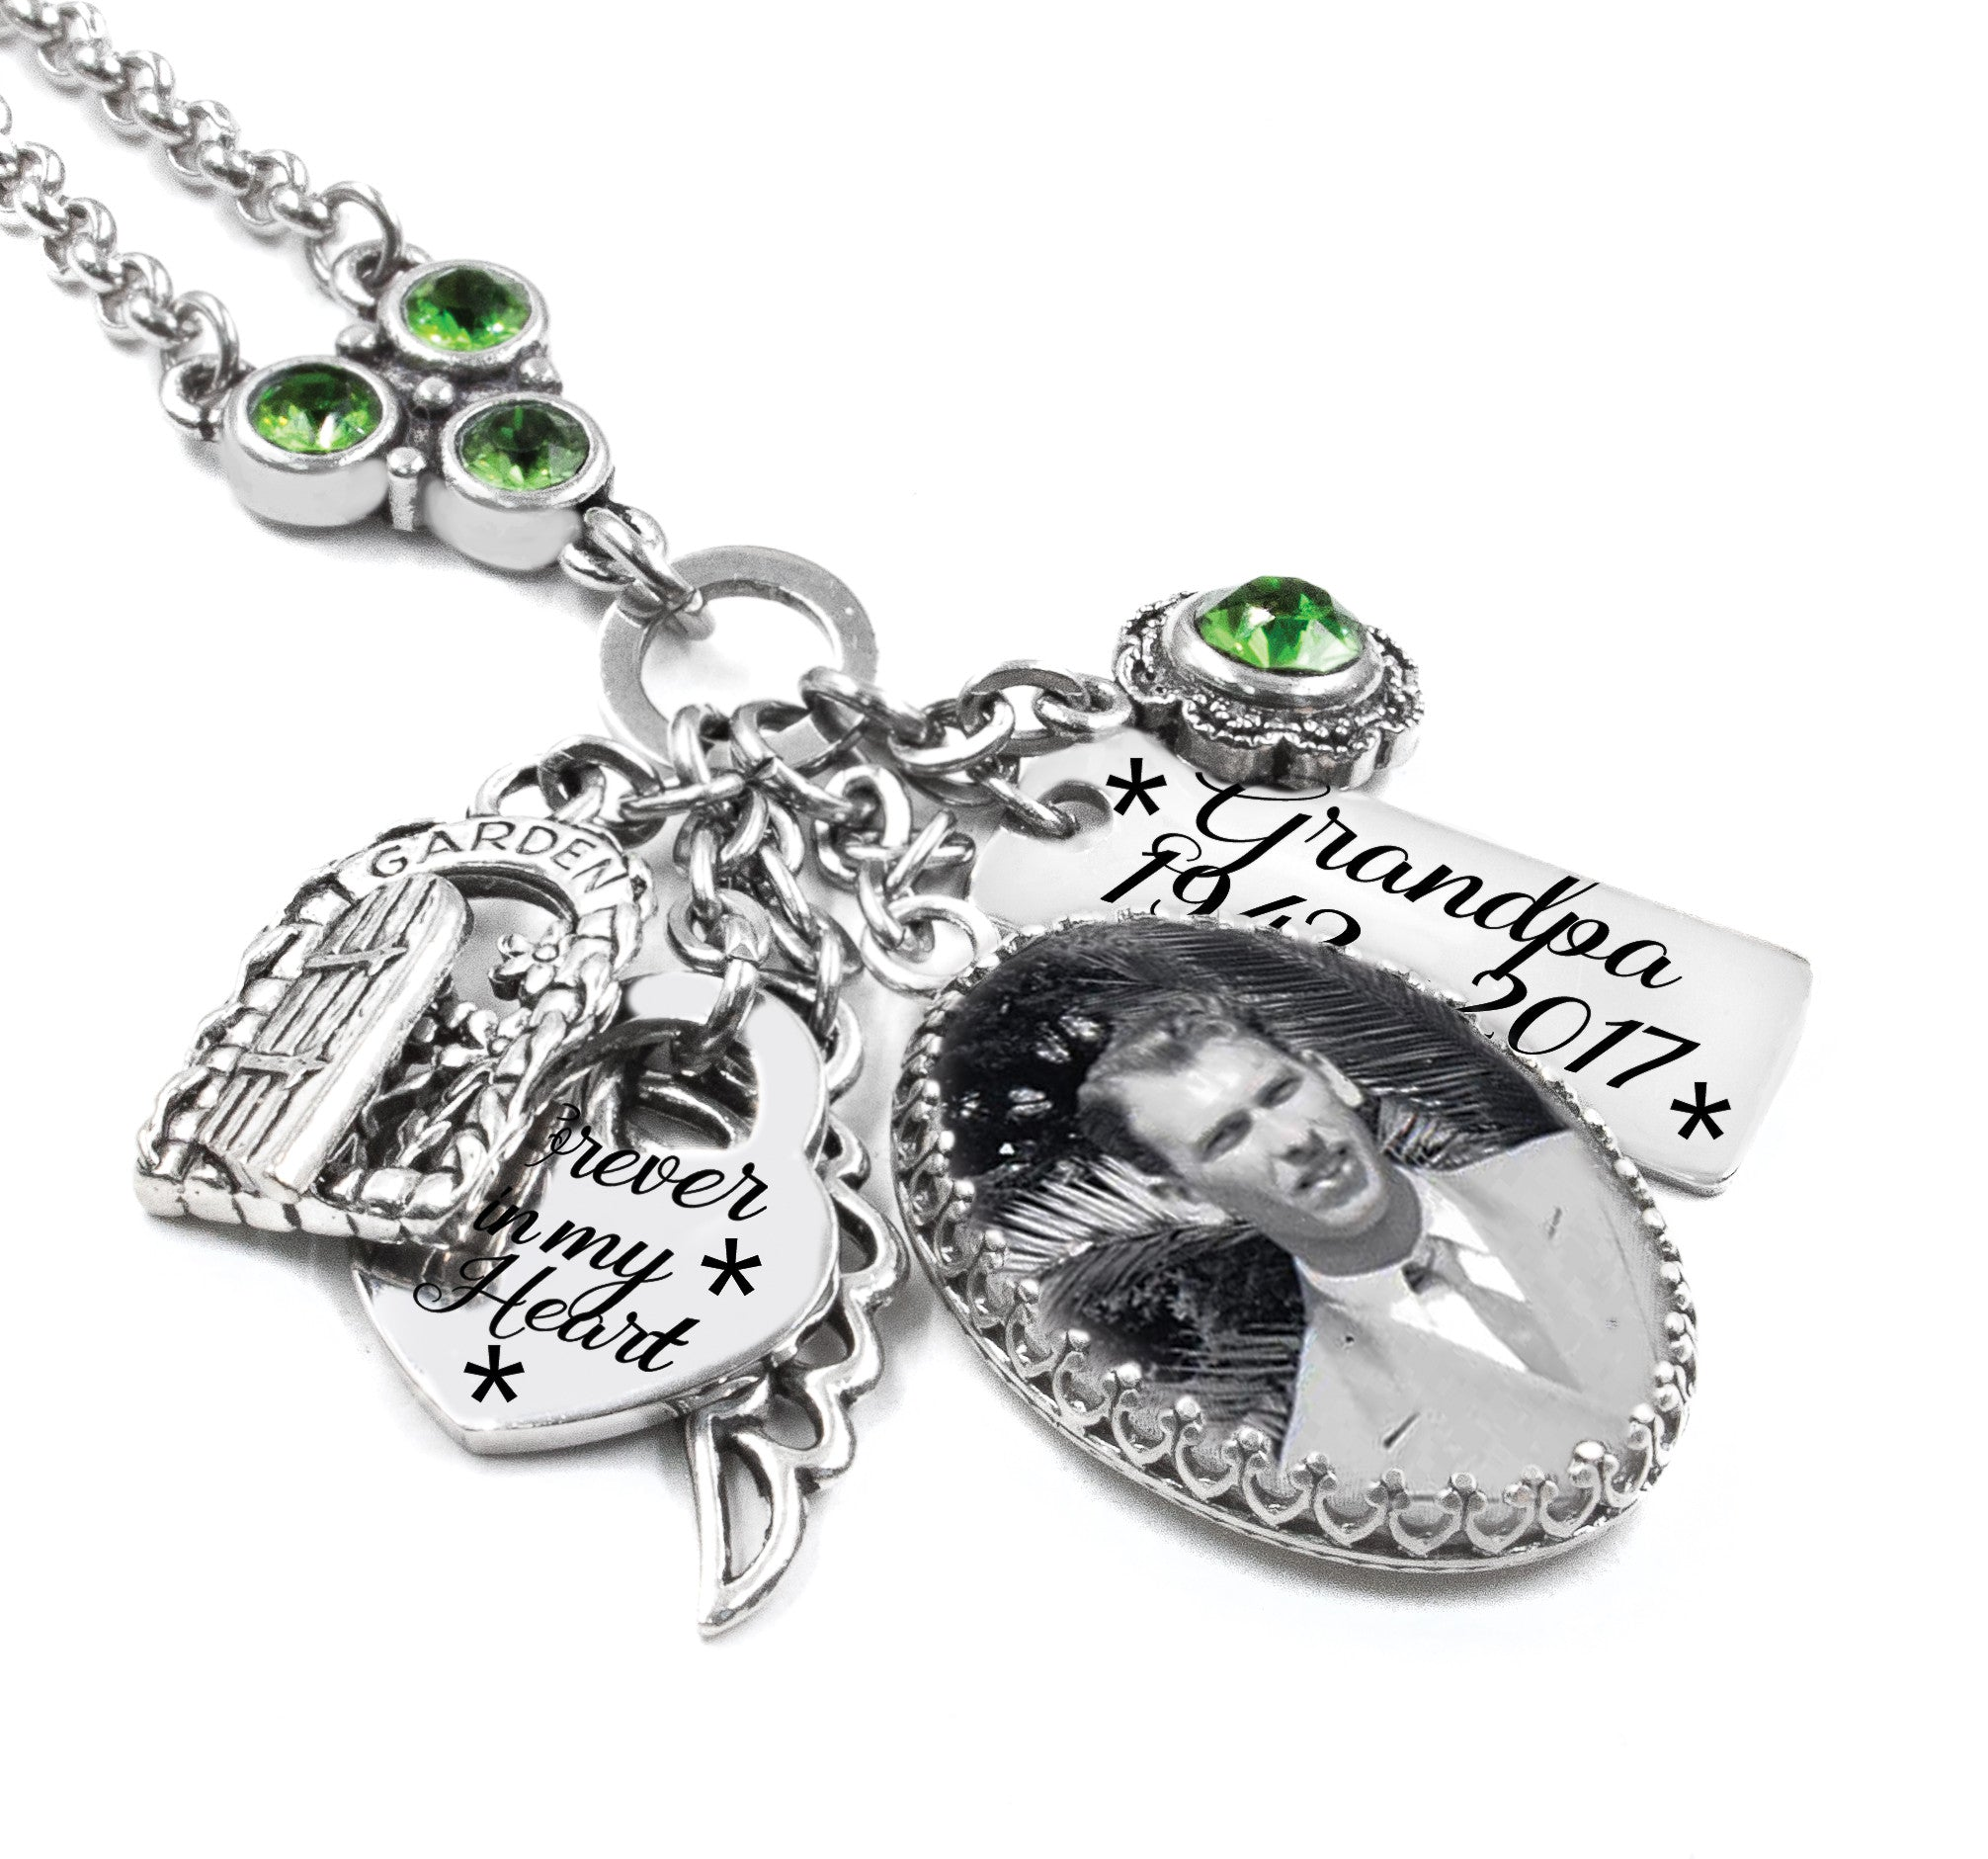 charm angel amazon dp urn his in with wing memorial arms keepsake amist jewelry crystal cremation has necklace com april birthstone you by god